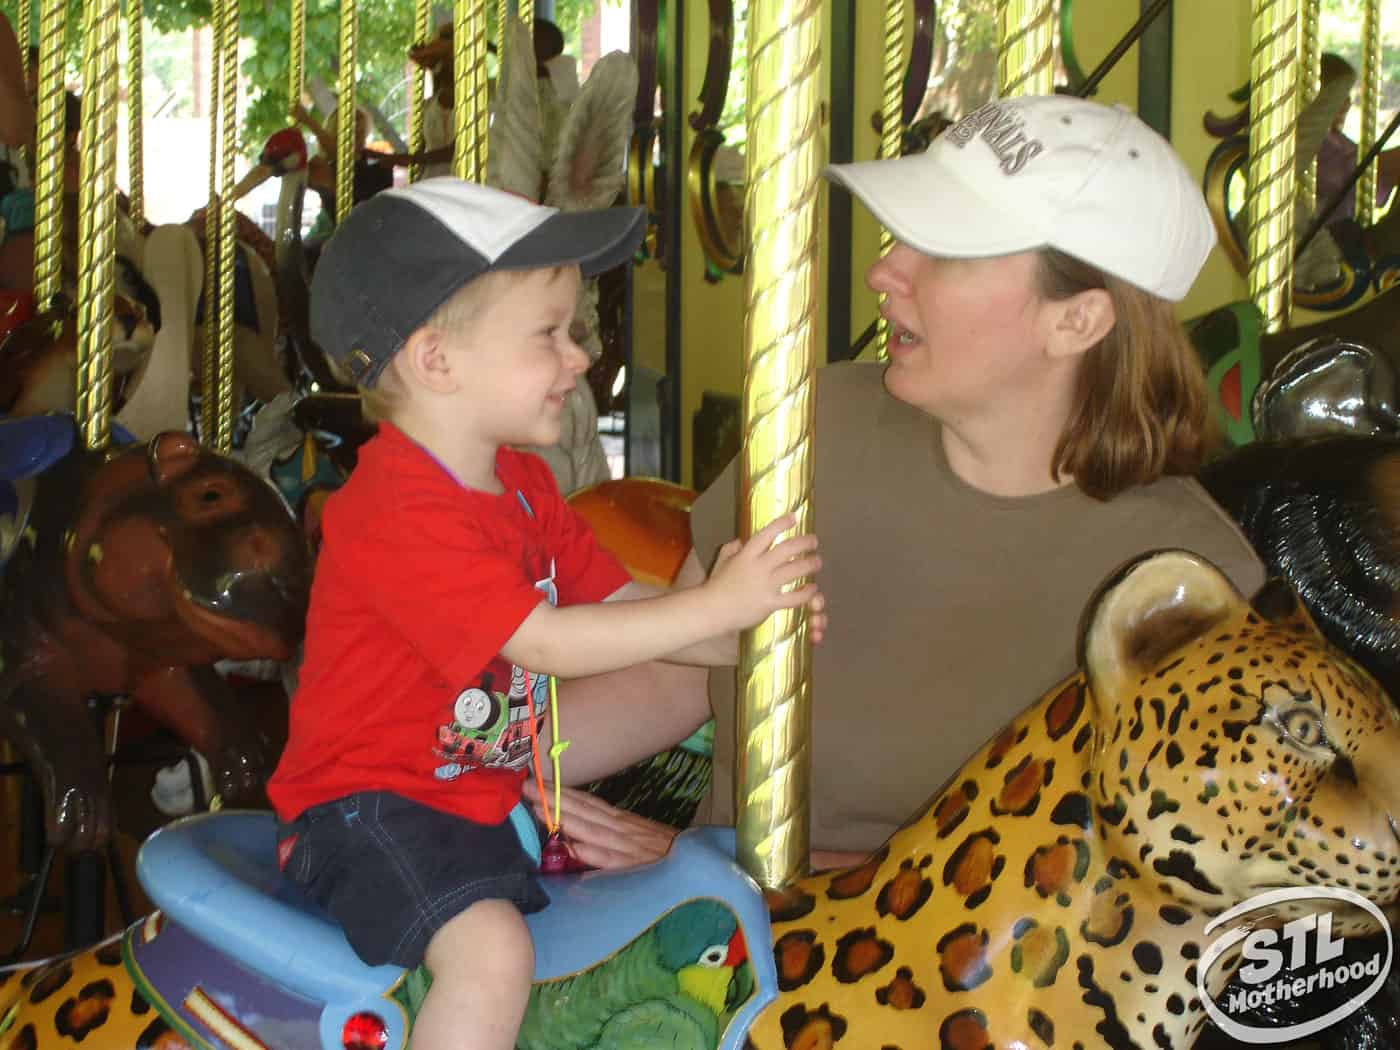 Mother and son on the Conservation Carousel at the St. Louis Zoo